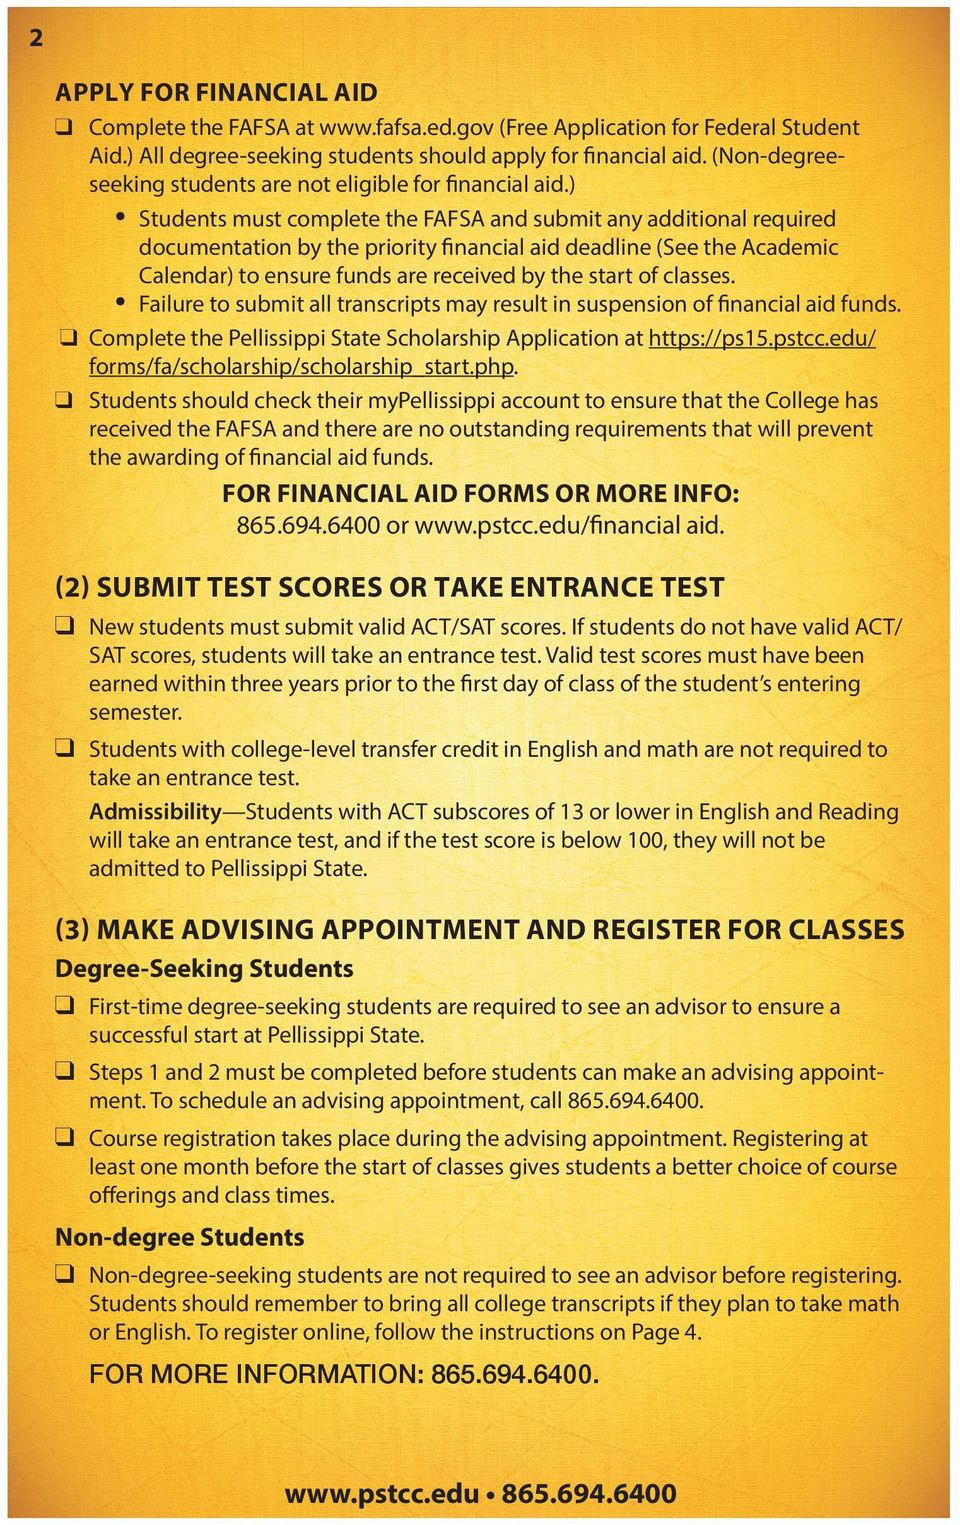 ) Students must complete the FAFSA and submit any additional required documentation by the priority financial aid deadline (See the Academic Calendar) to ensure funds are received by the start of